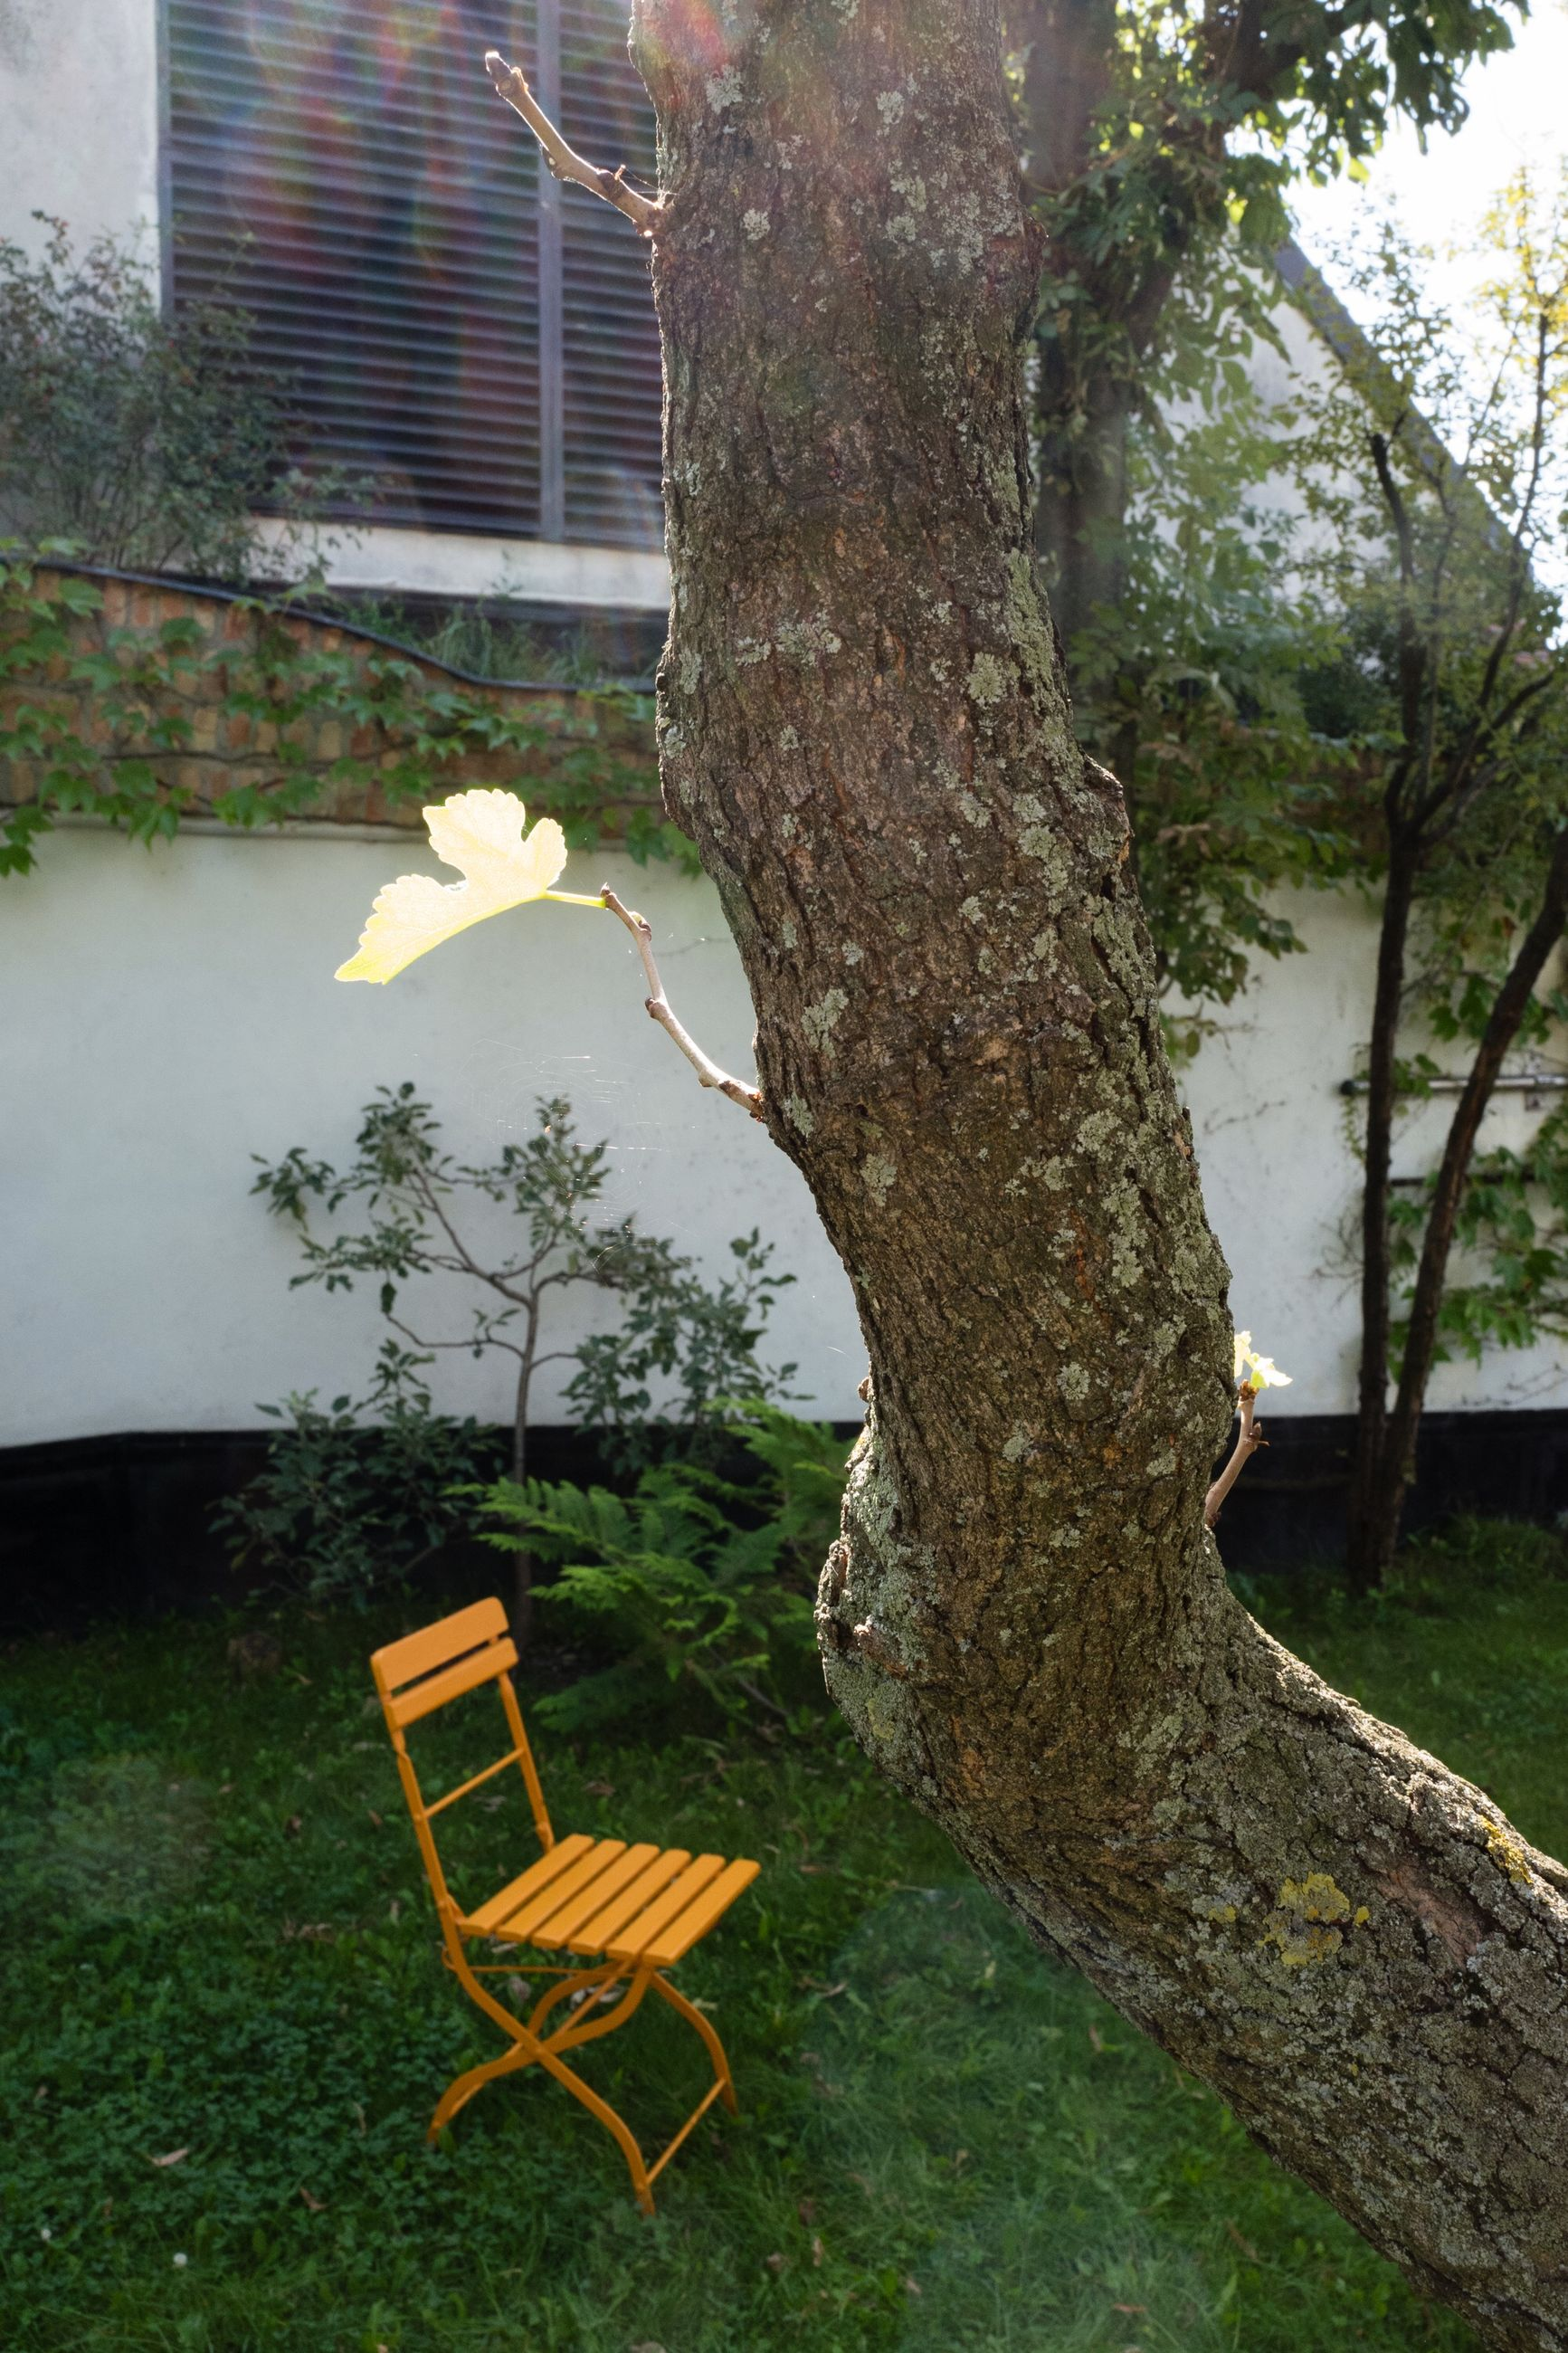 plant, seat, tree, tree trunk, chair, trunk, nature, grass, empty, no people, absence, day, front or back yard, outdoors, growth, building exterior, built structure, architecture, lawn, yellow